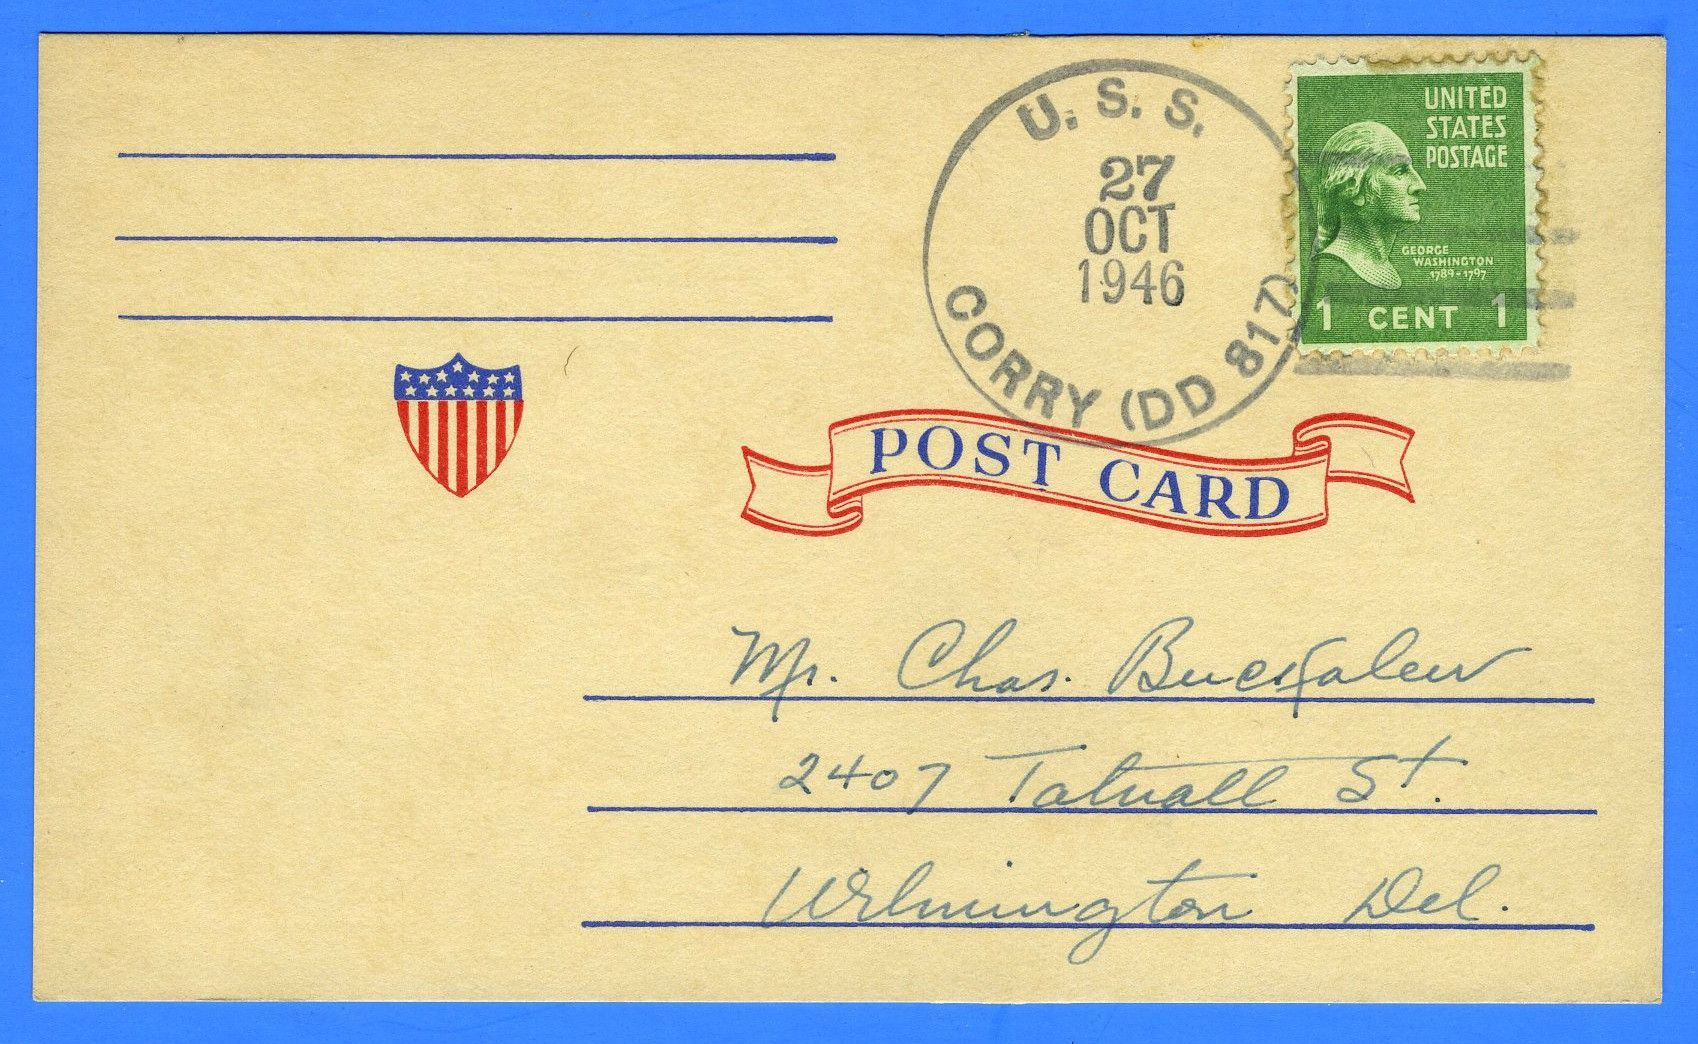 USS Corry DD-817 October 27, 1946 - On Post Card